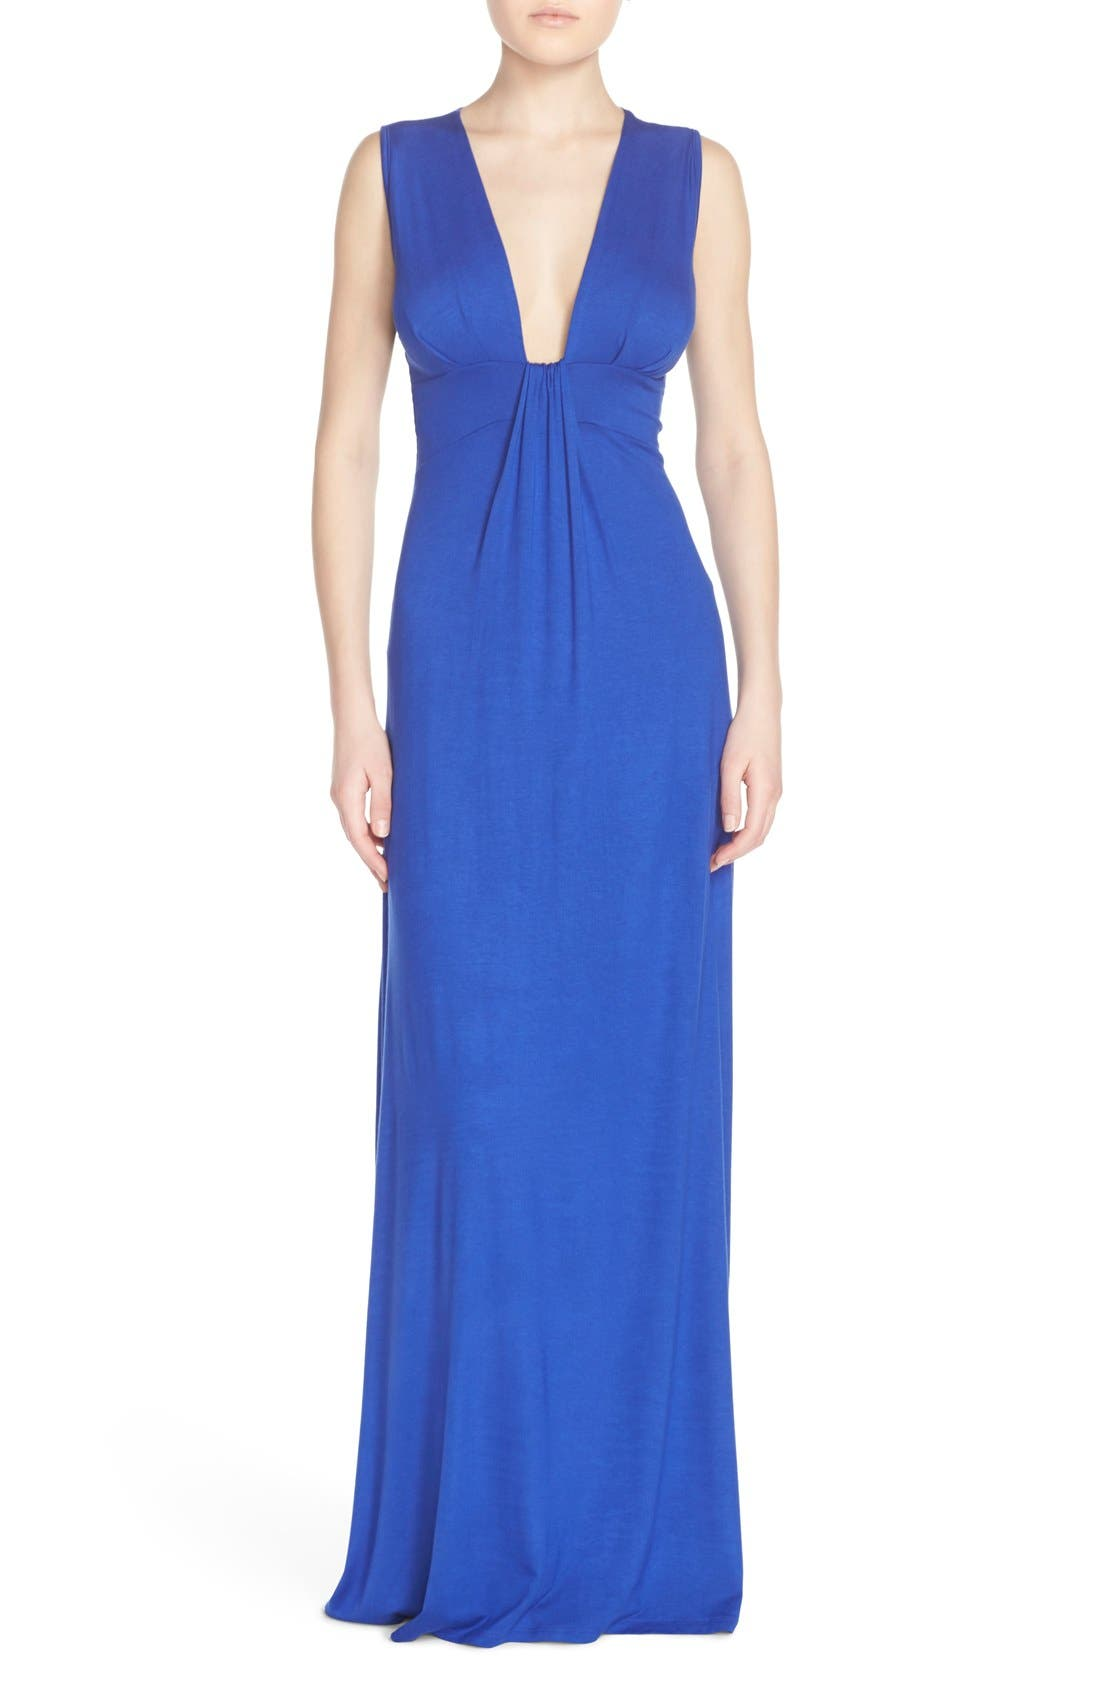 Alternate Image 1 Selected - Fraiche by J Deep V-Neck Jersey Maxi Dress